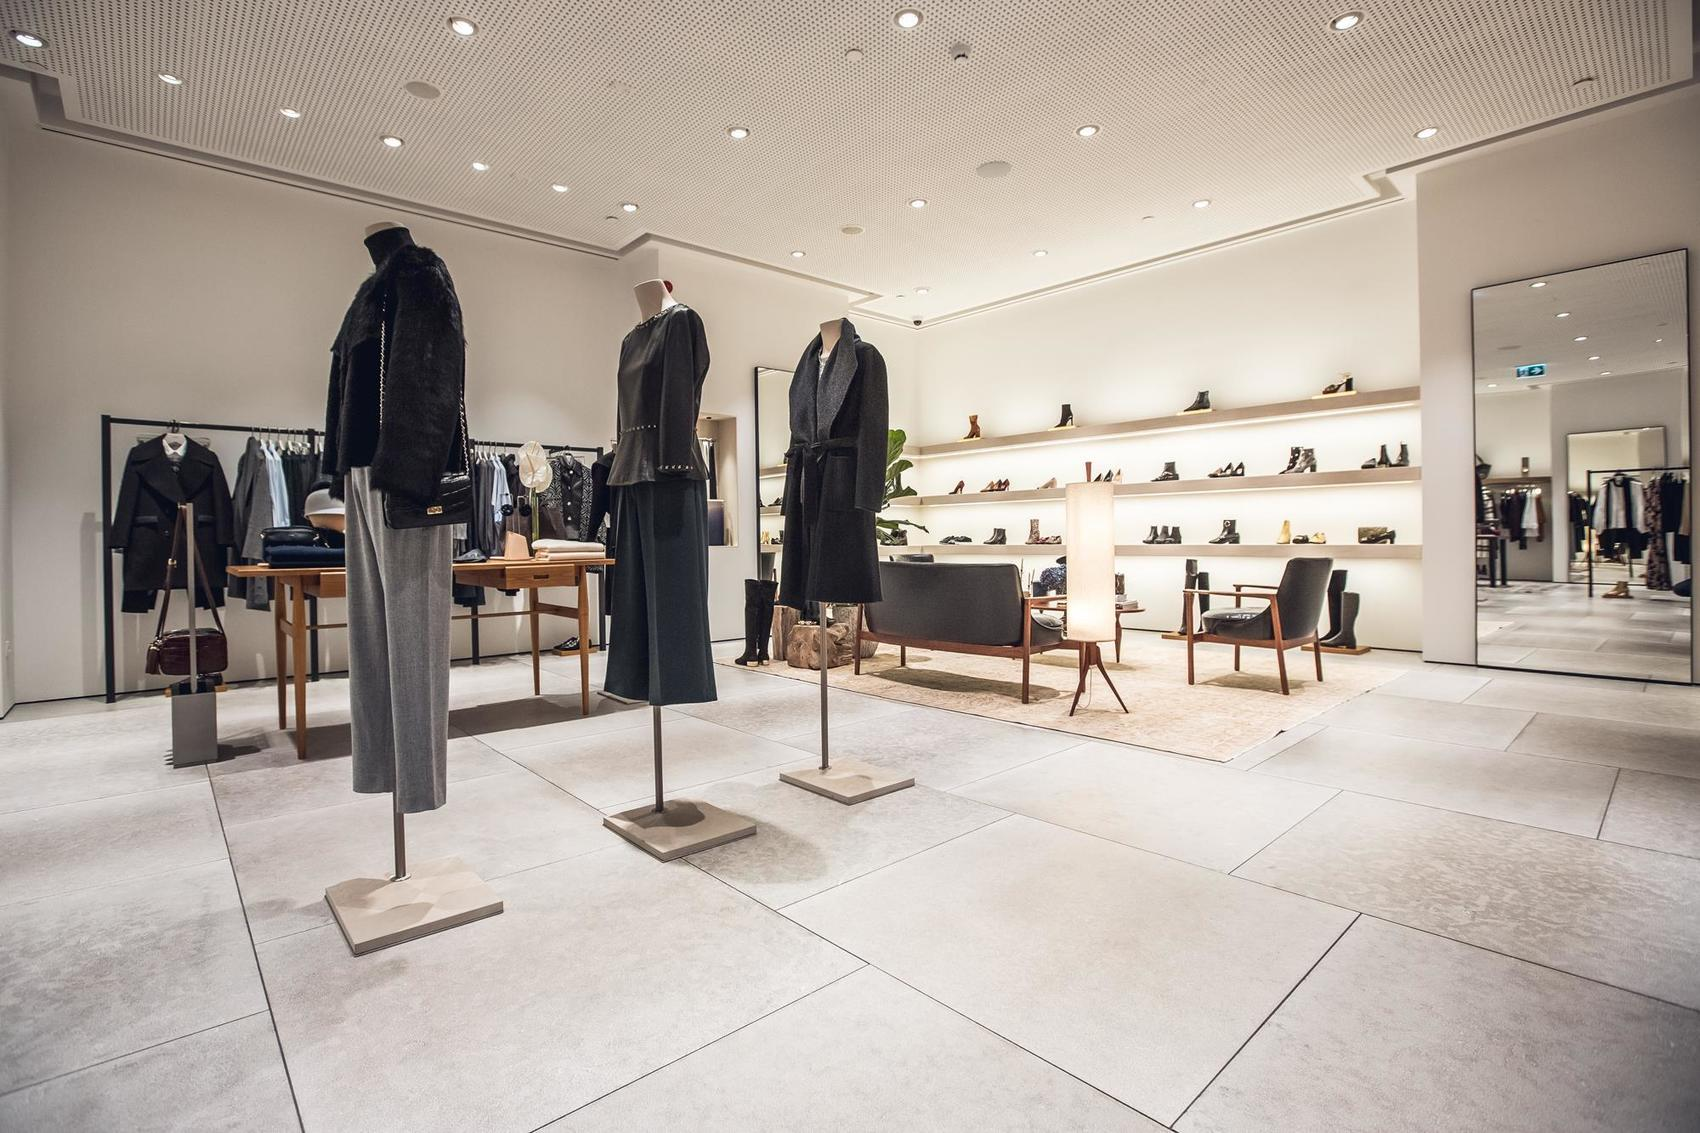 , Inditex among signatories for 'Fashion Pact' sustainability initiative, The Circular Economy